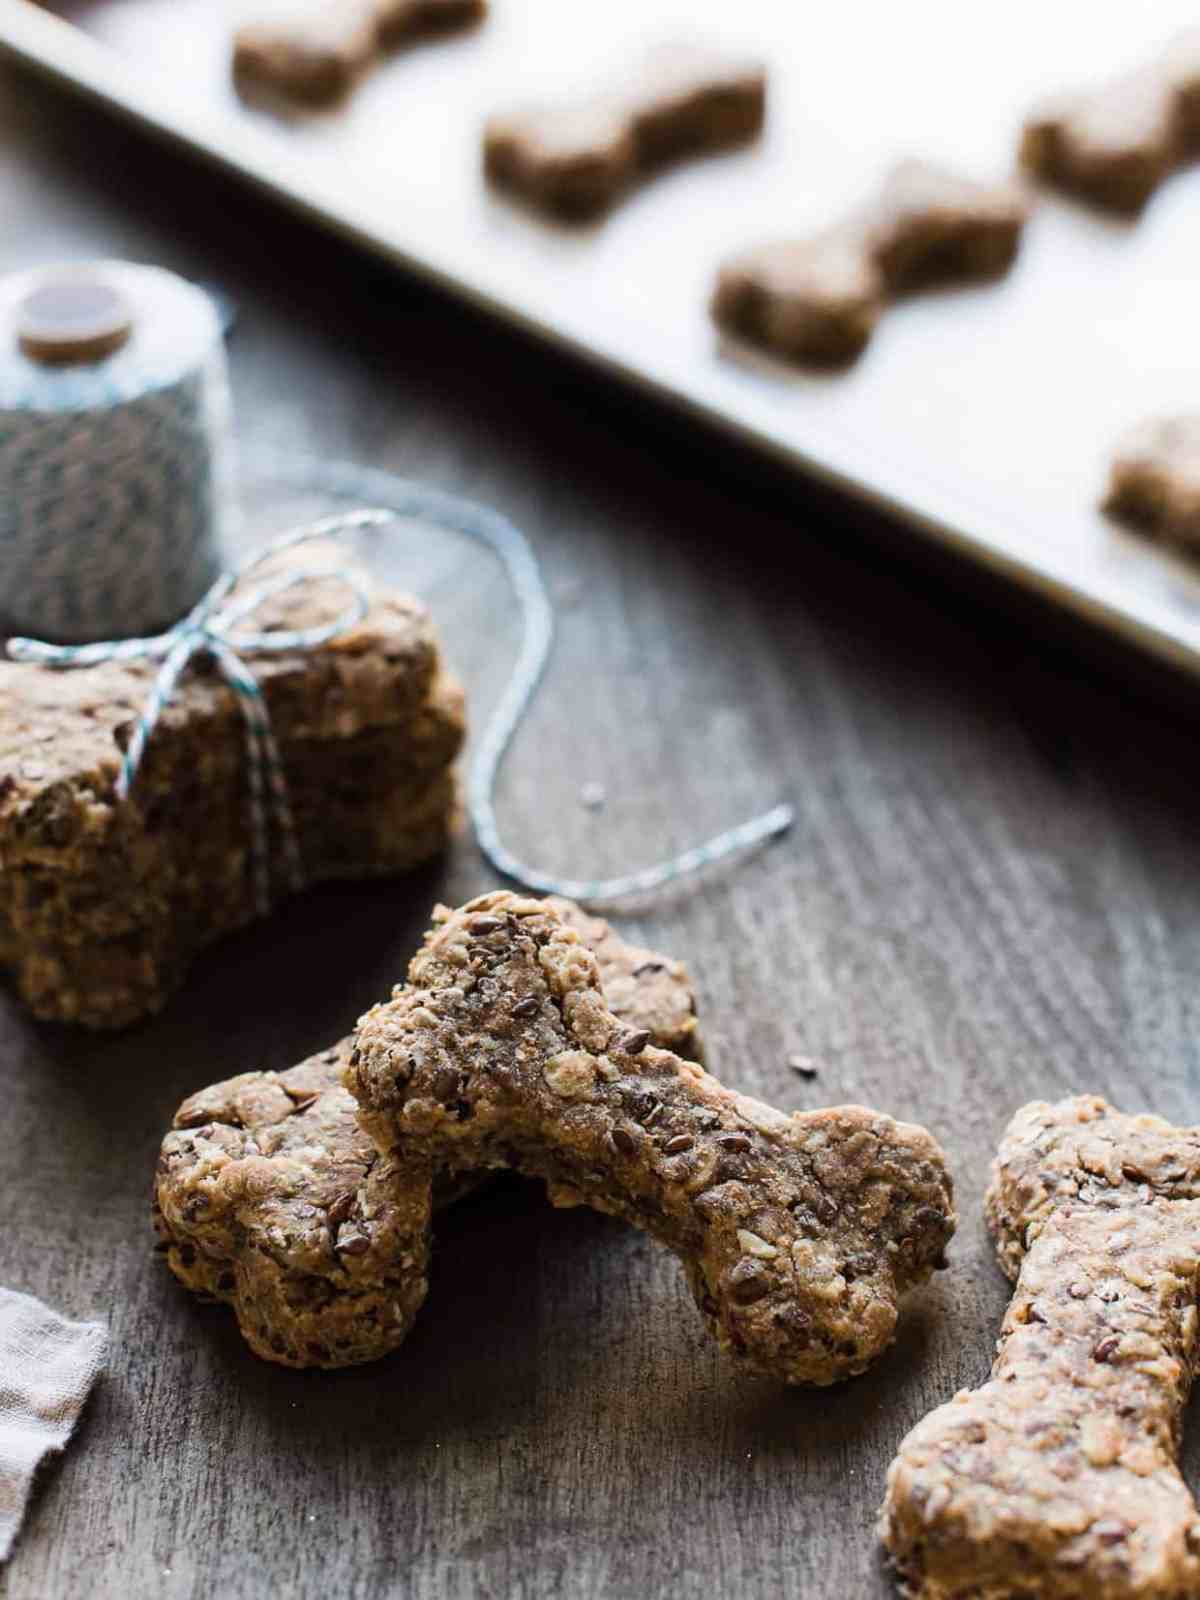 Homemade dog biscuits stacked on table